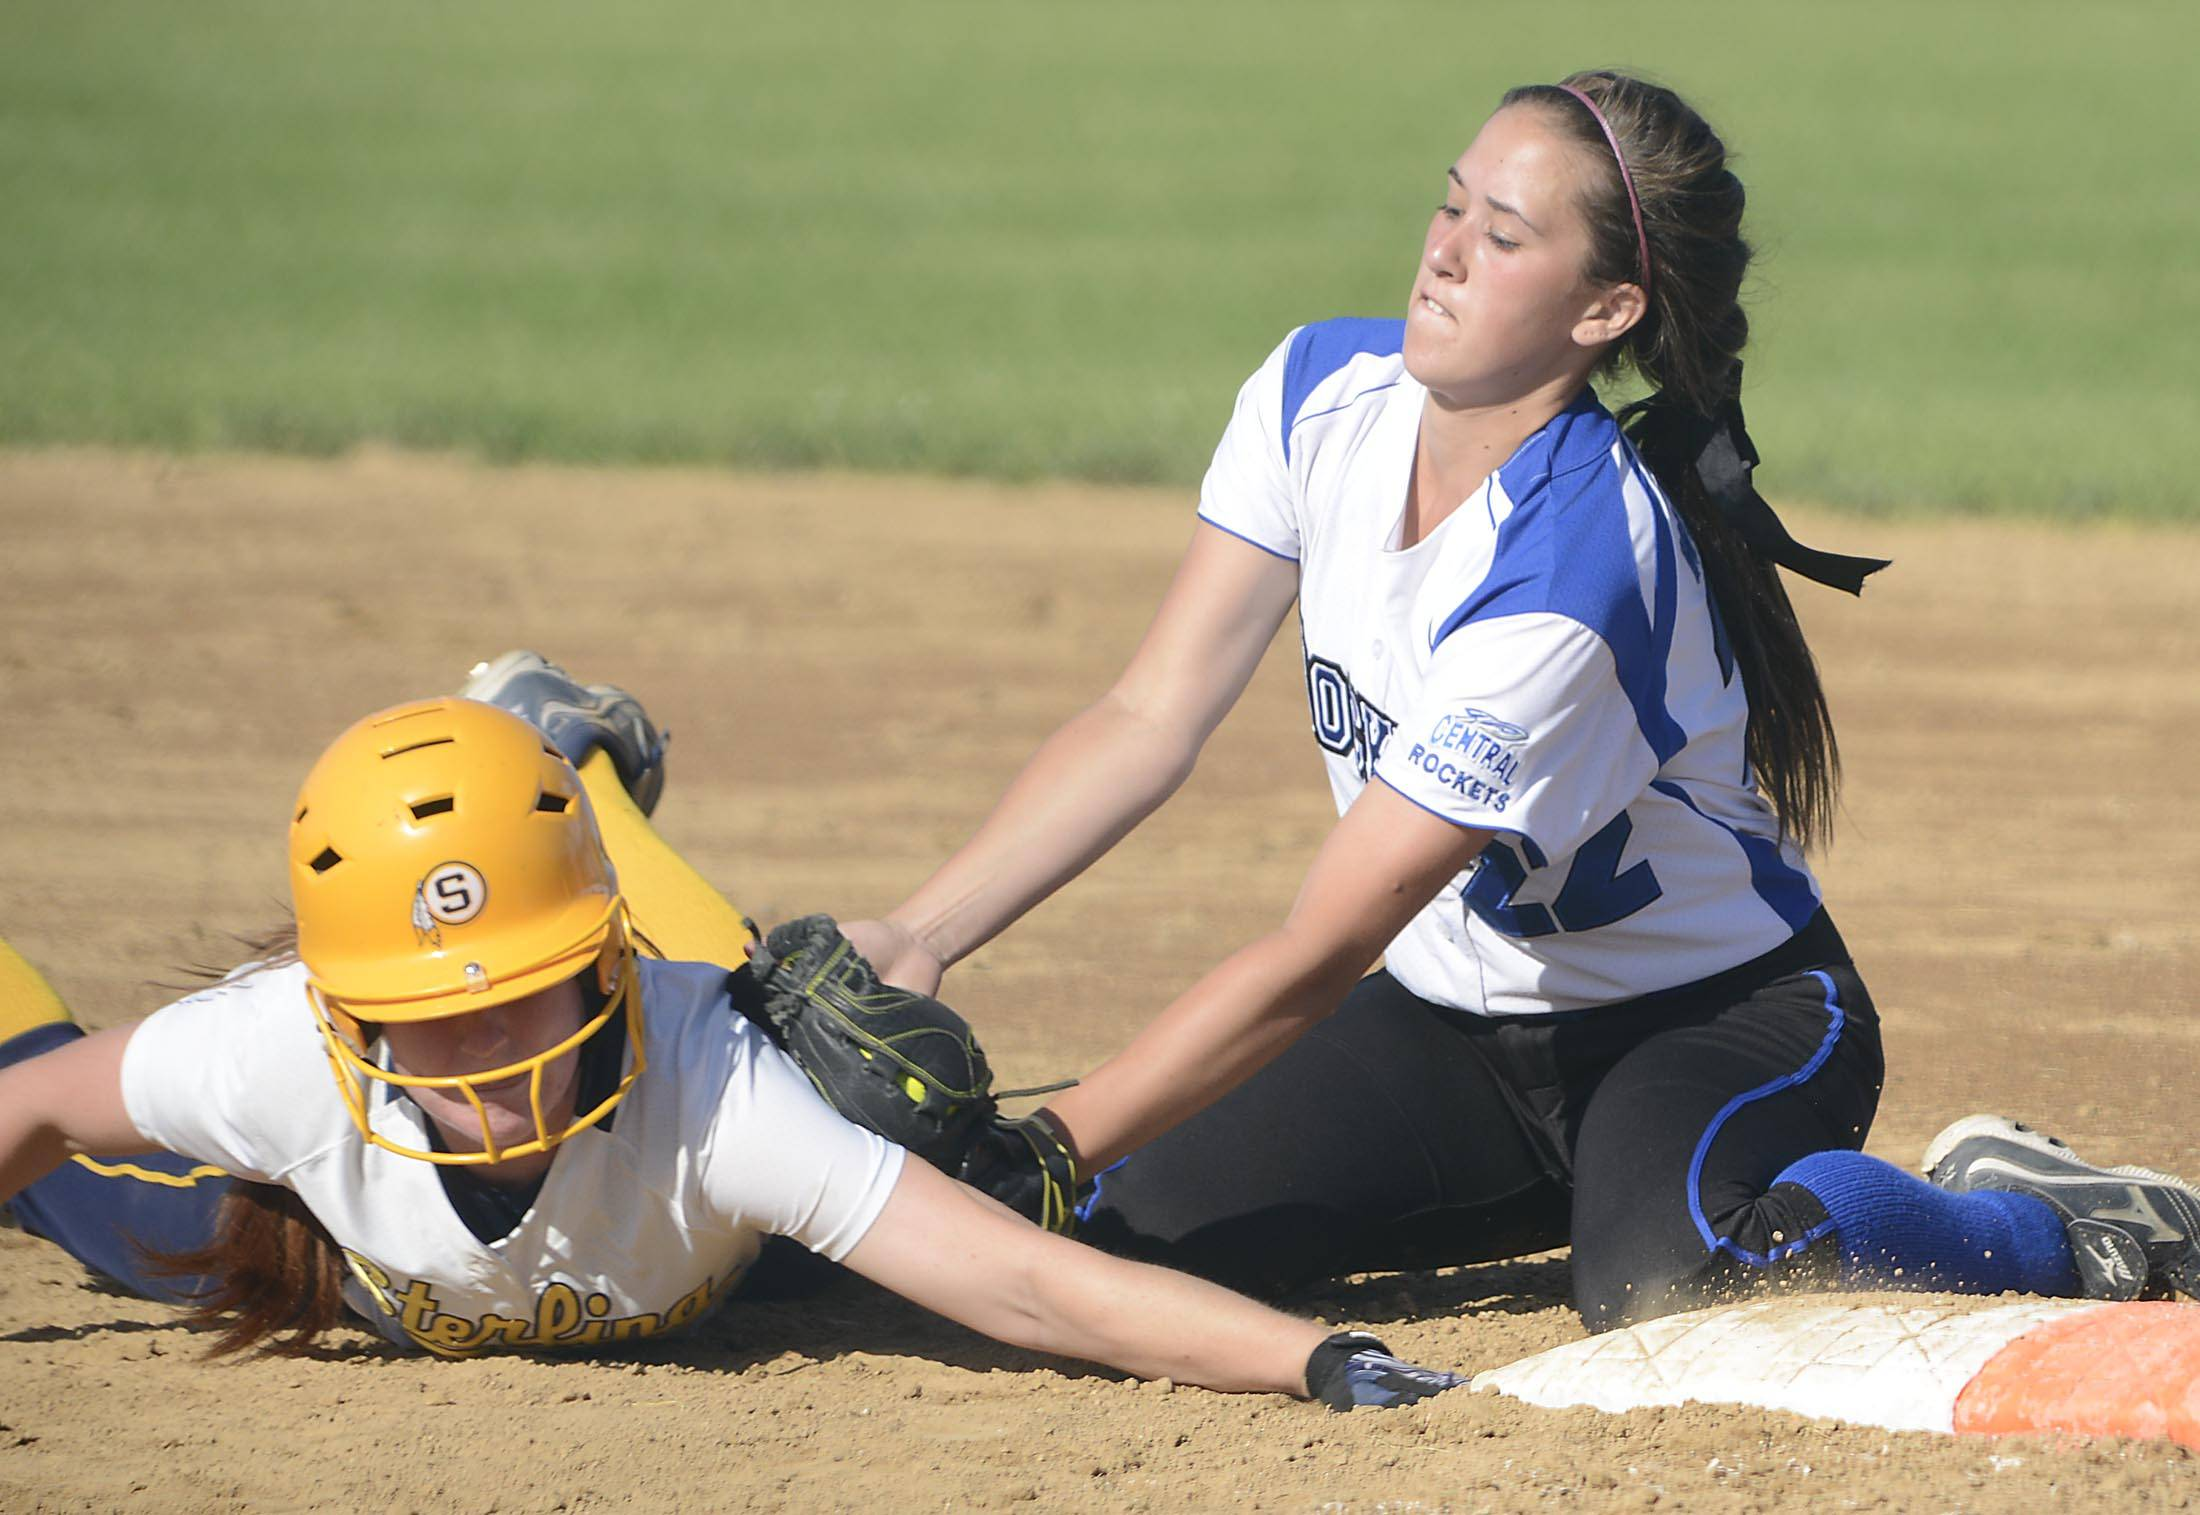 Burlington Central's Kelly Wiater tags Sterling's Darien Bardoner out at first base in the fourth inning Tuesday in the Class 3A Marengo sectional semifinal game.